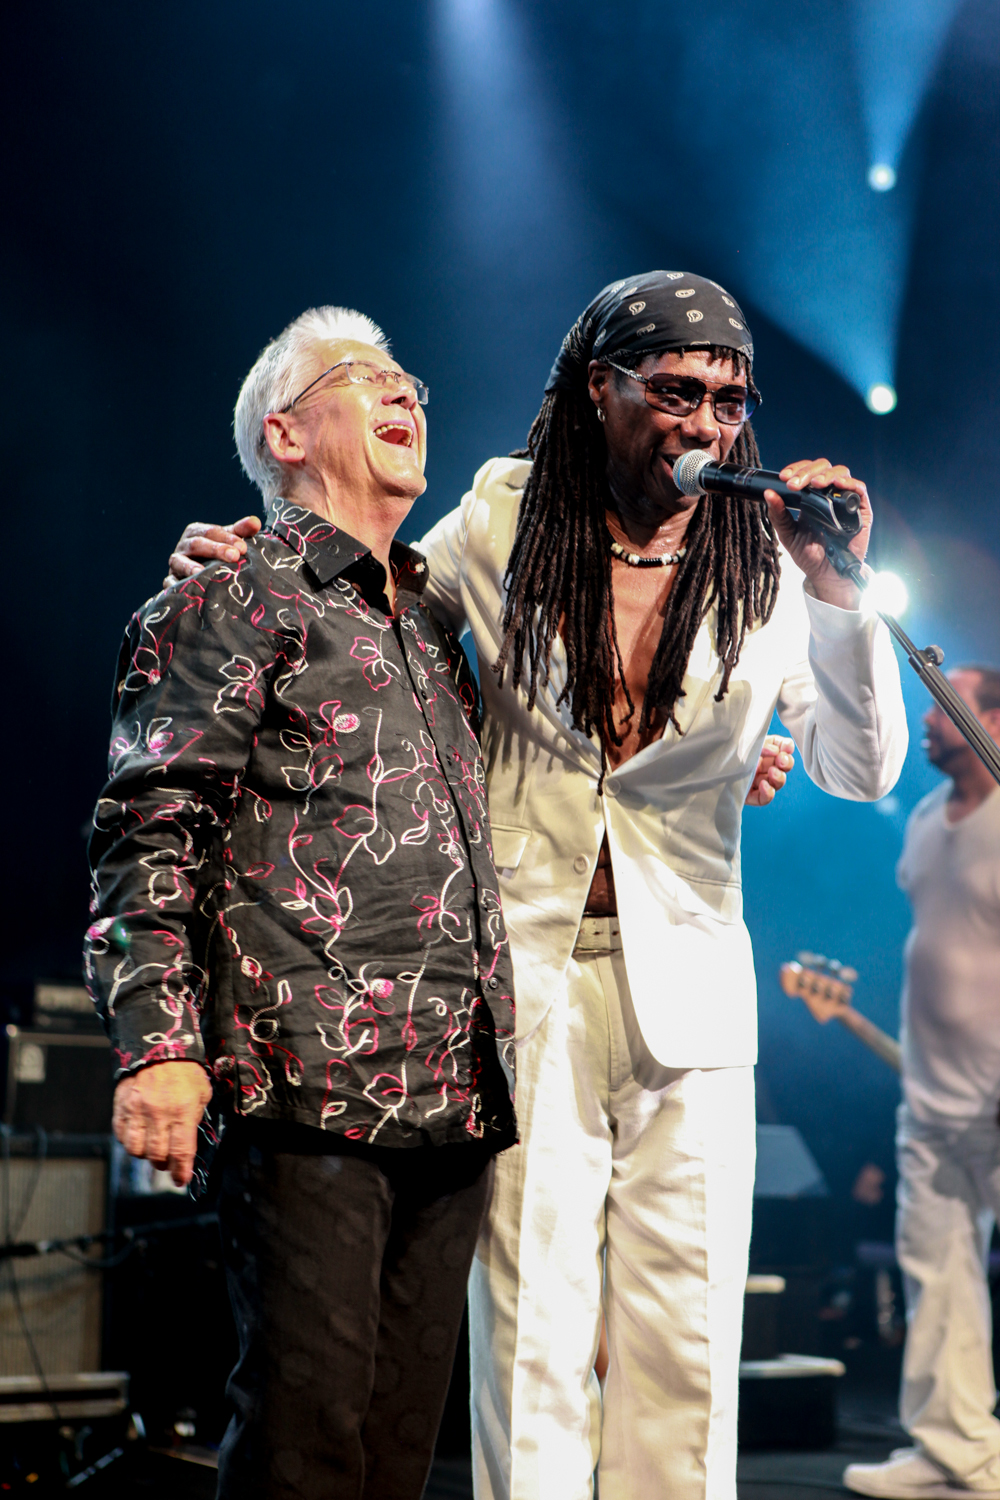 nile-rodgers-claude-nobs_01_montreux-jazz-festival-2012_IMG_5695.jpg